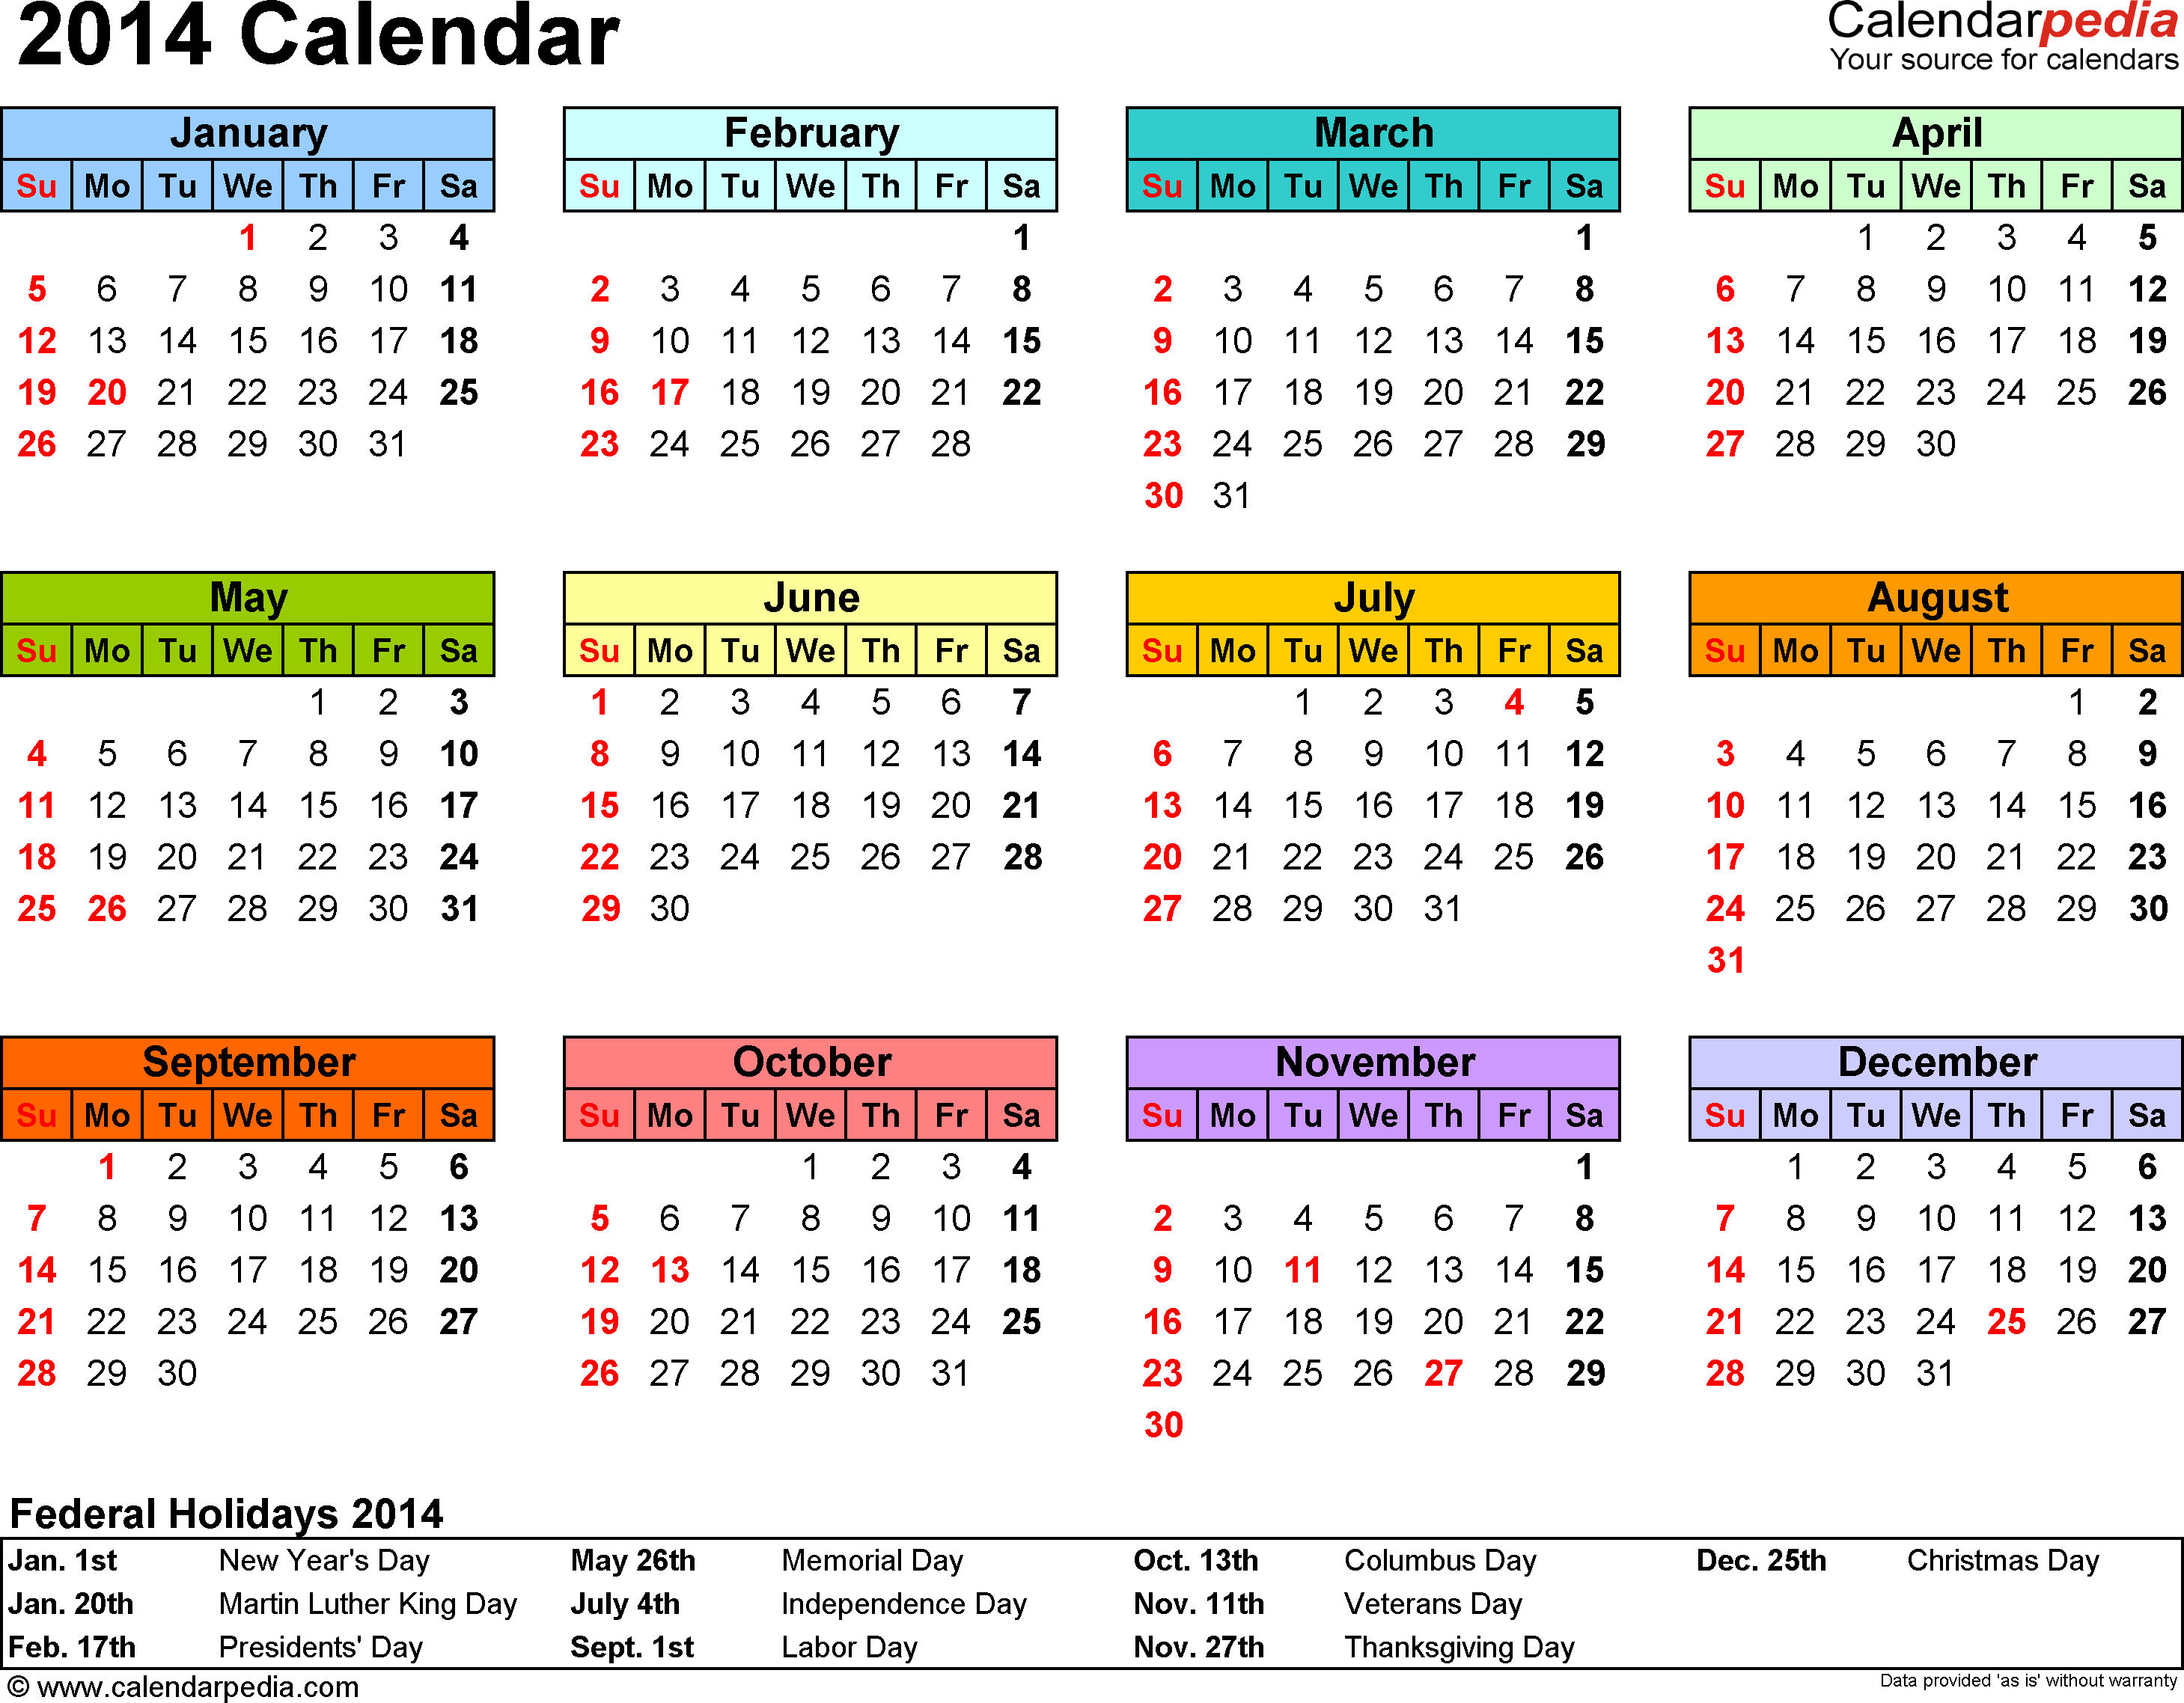 2014 Calendar PDF - 13 free printable calendar templates for PDF